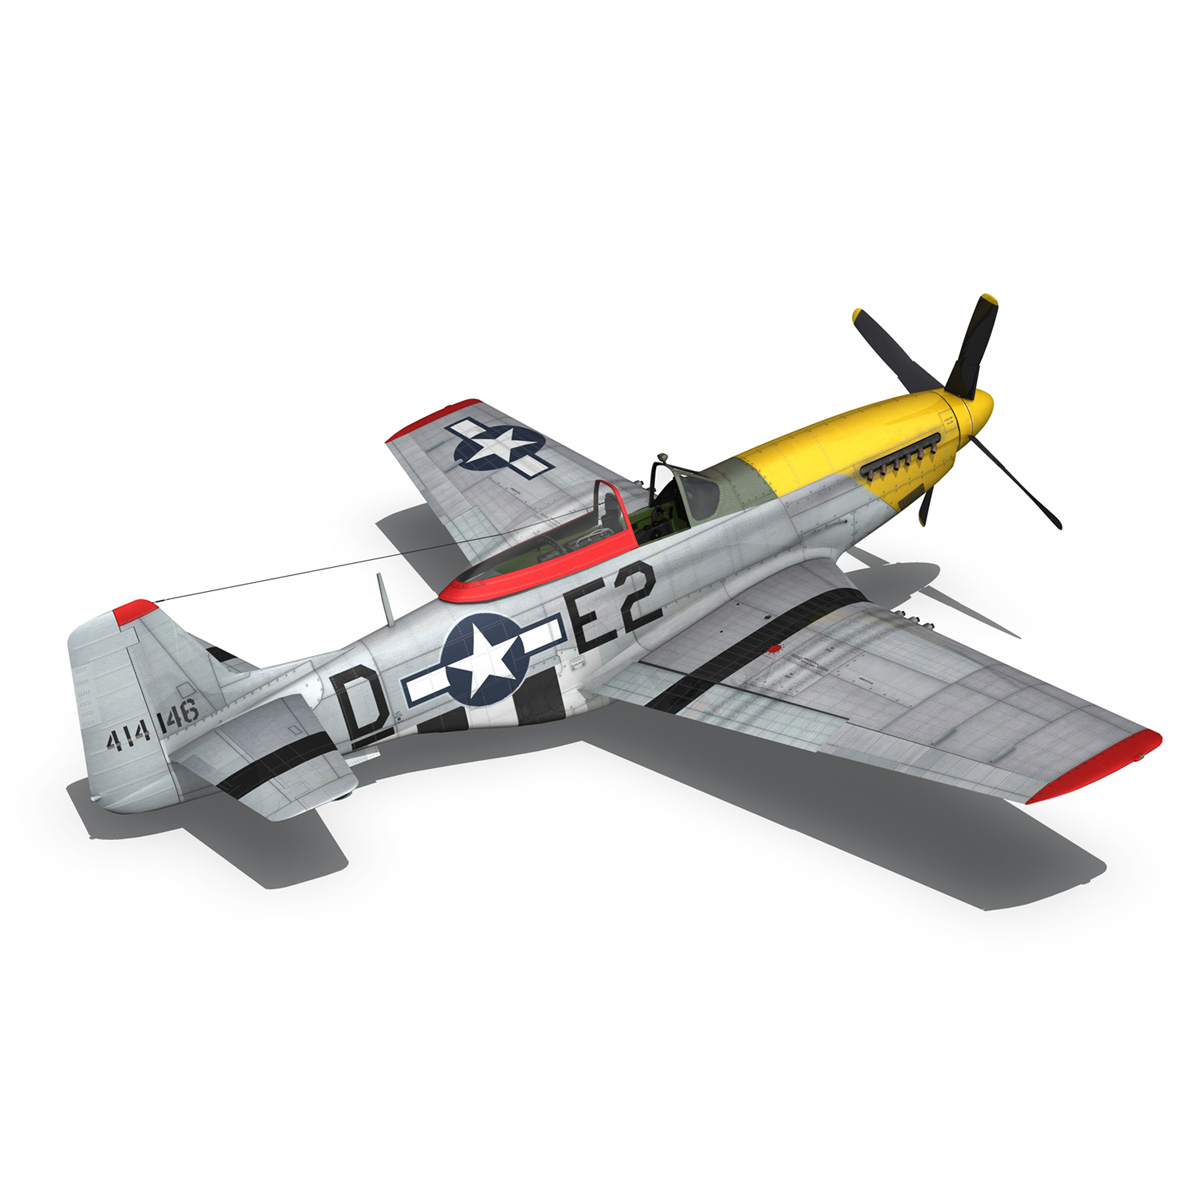 north american p-51d – mustang – detroit miss 3d model 3ds fbx c4d lwo obj 267604